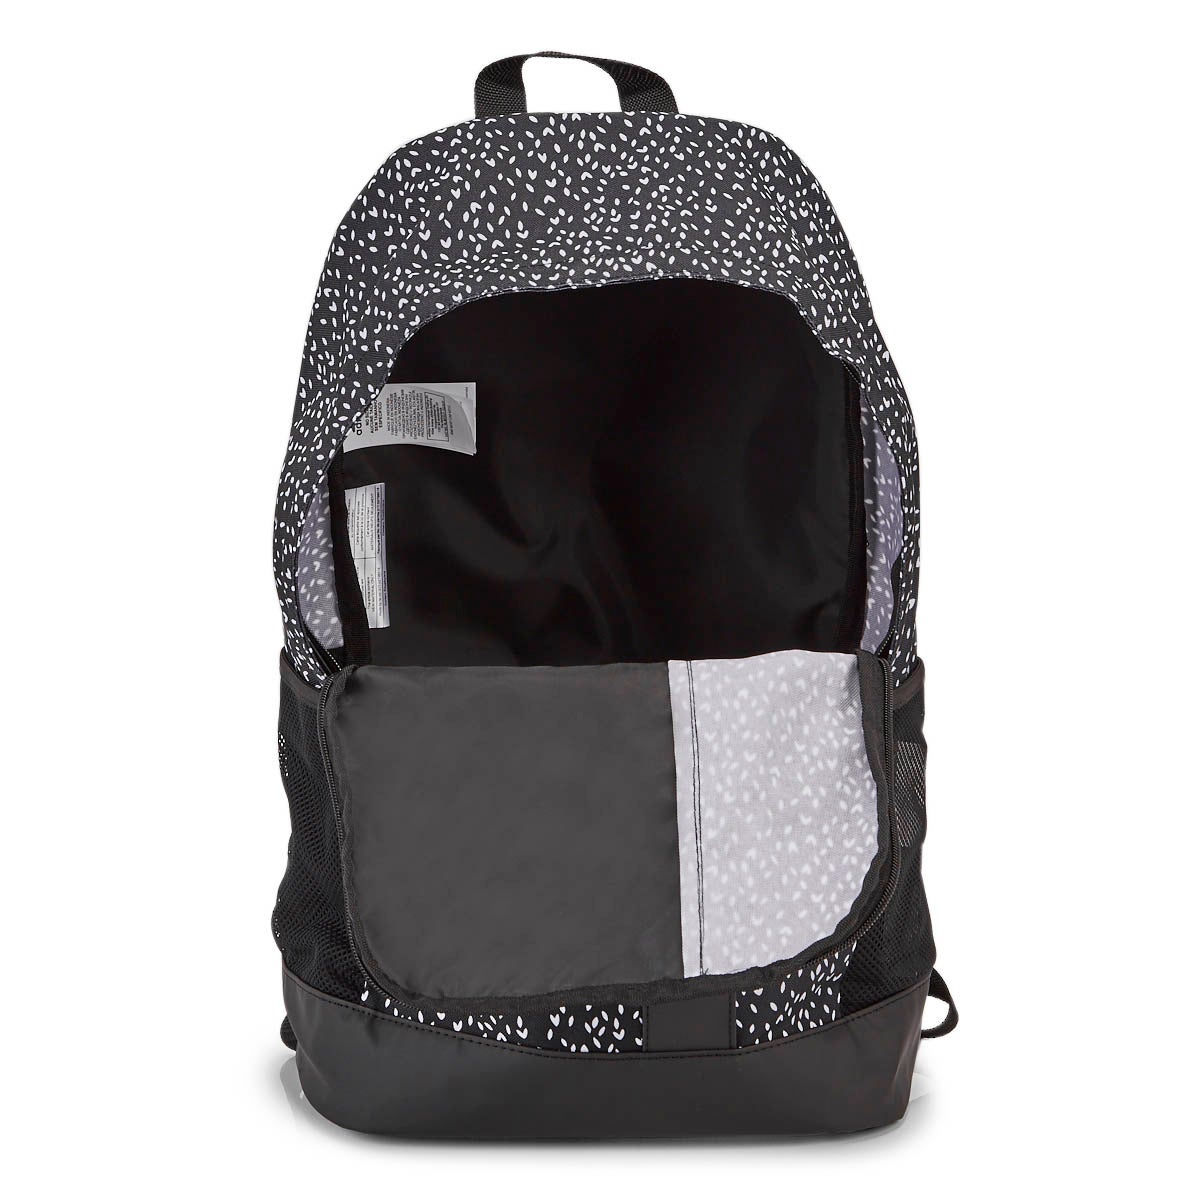 Adidas LIN BP GR blk/wht backpack